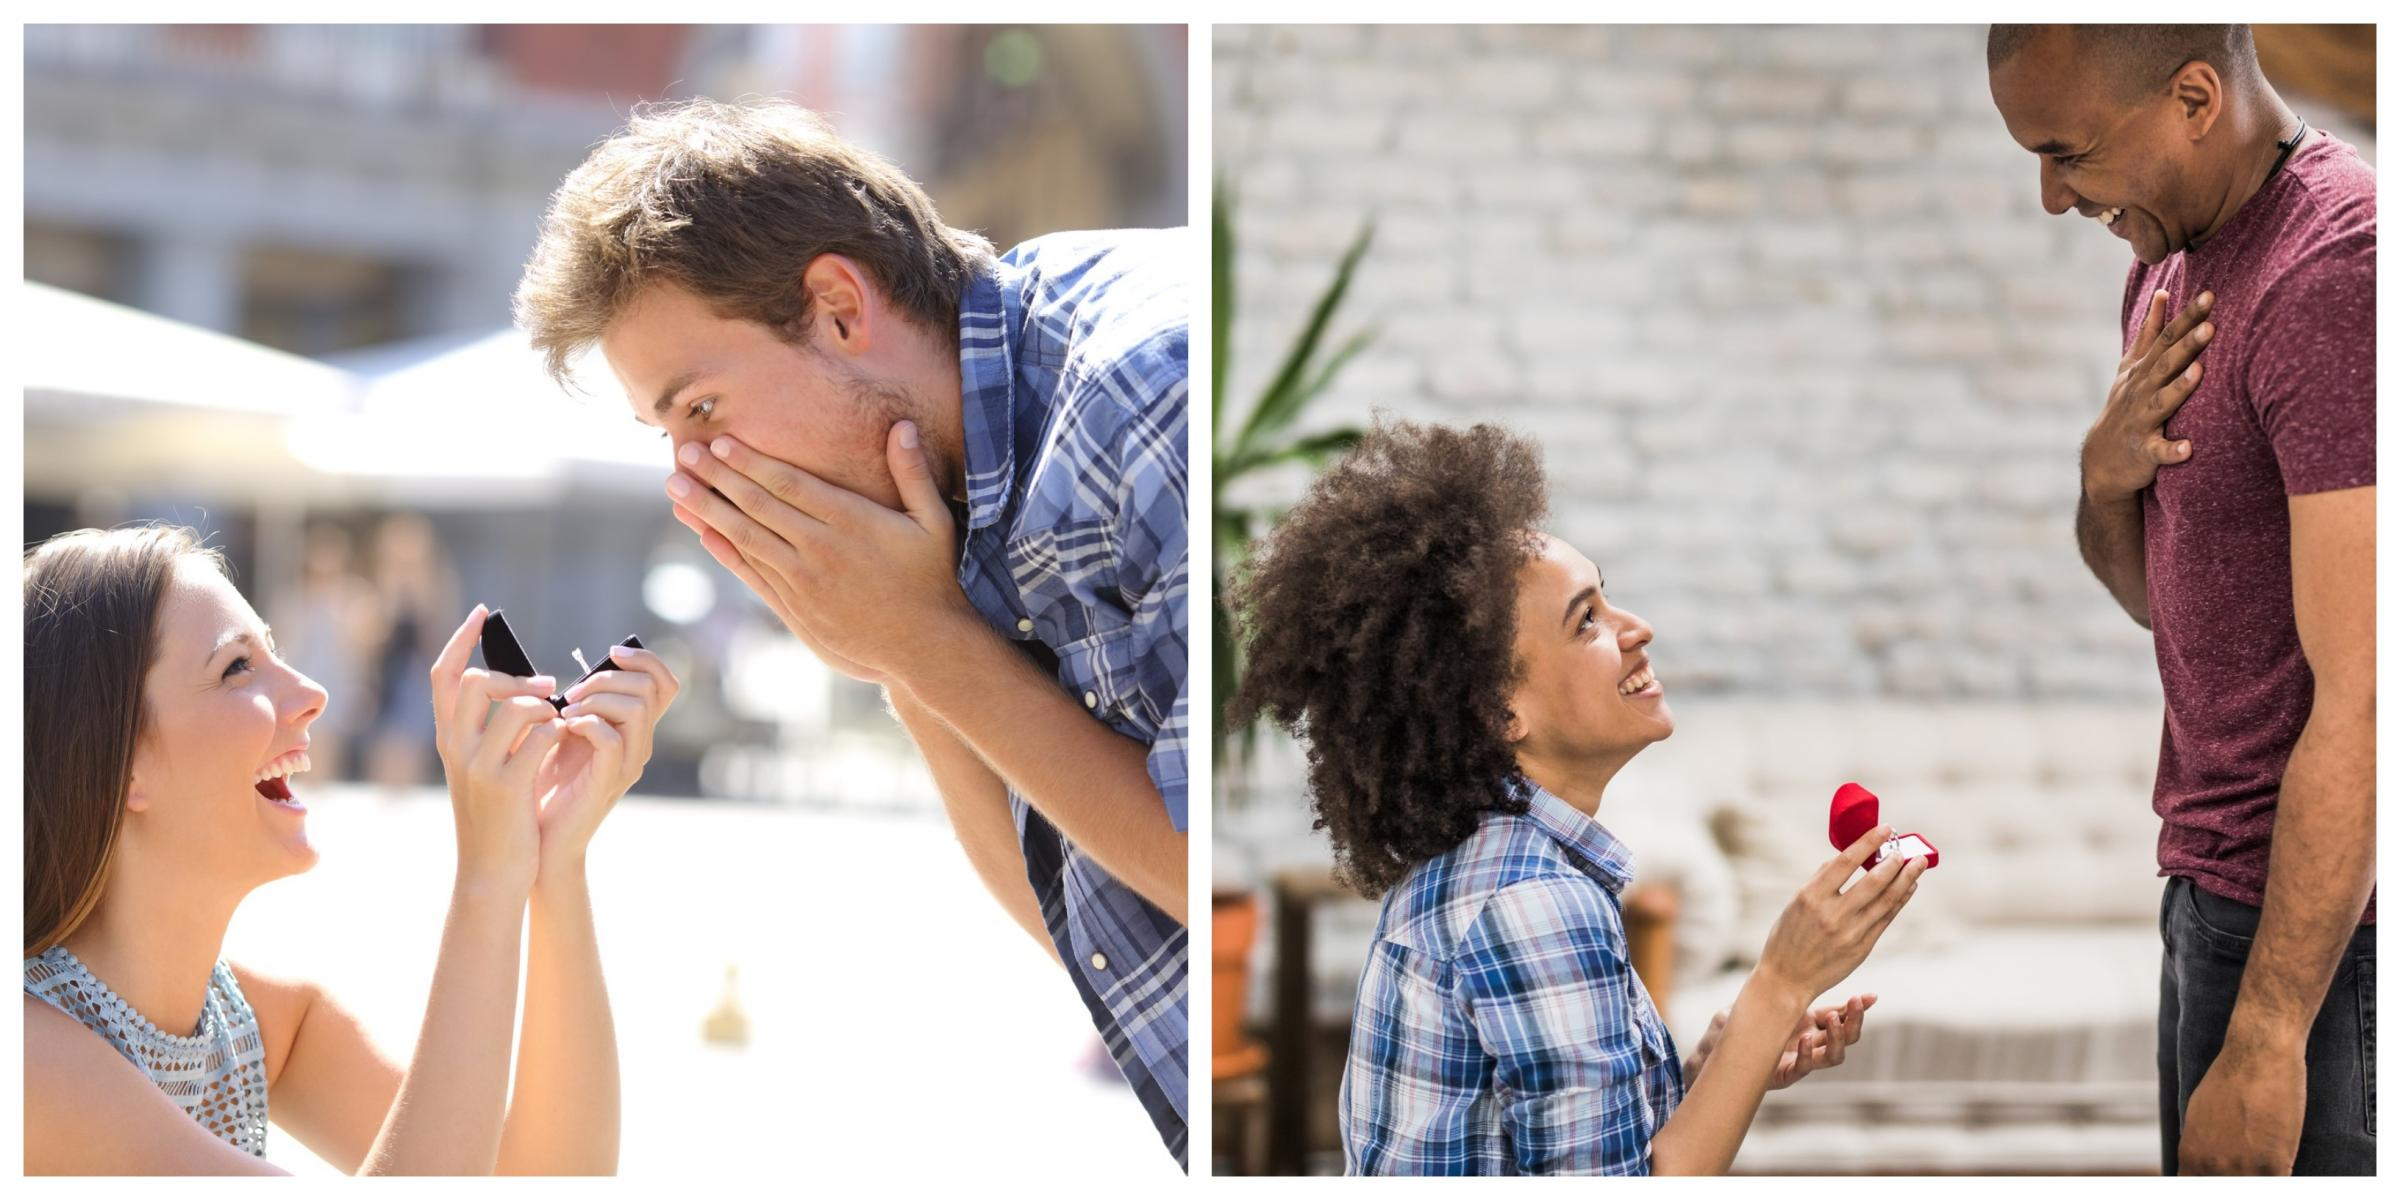 Leap year love: Why women traditionally propose on February 29